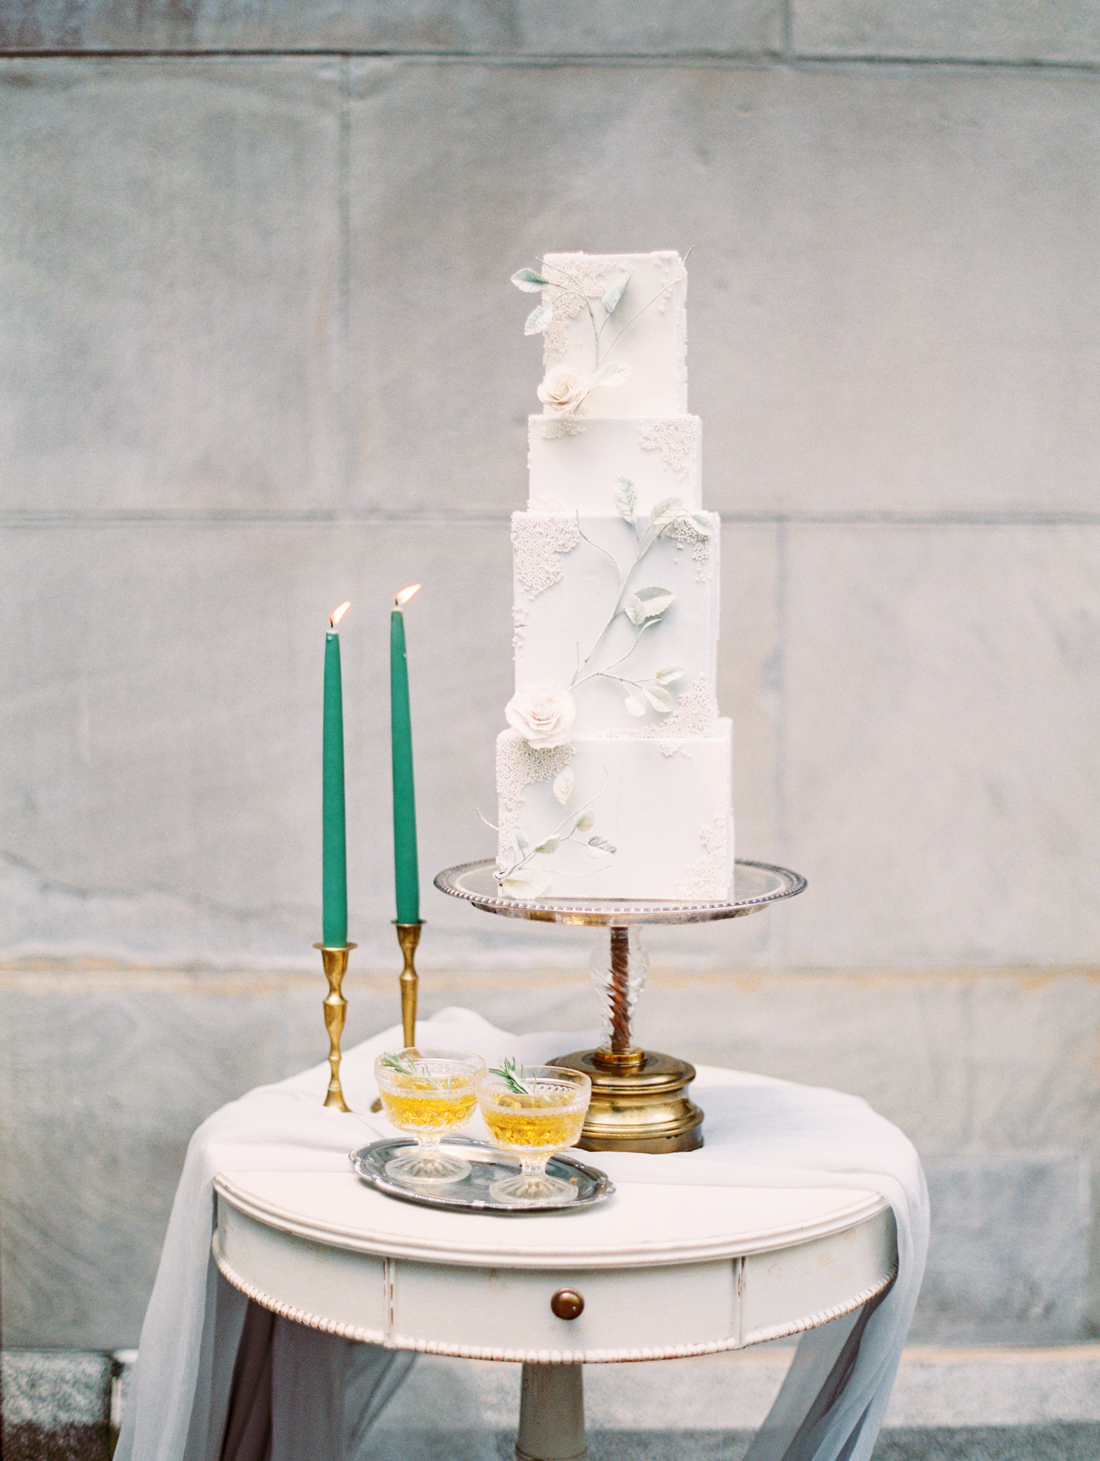 Trending Now: Bas-Relief Wedding Cakes